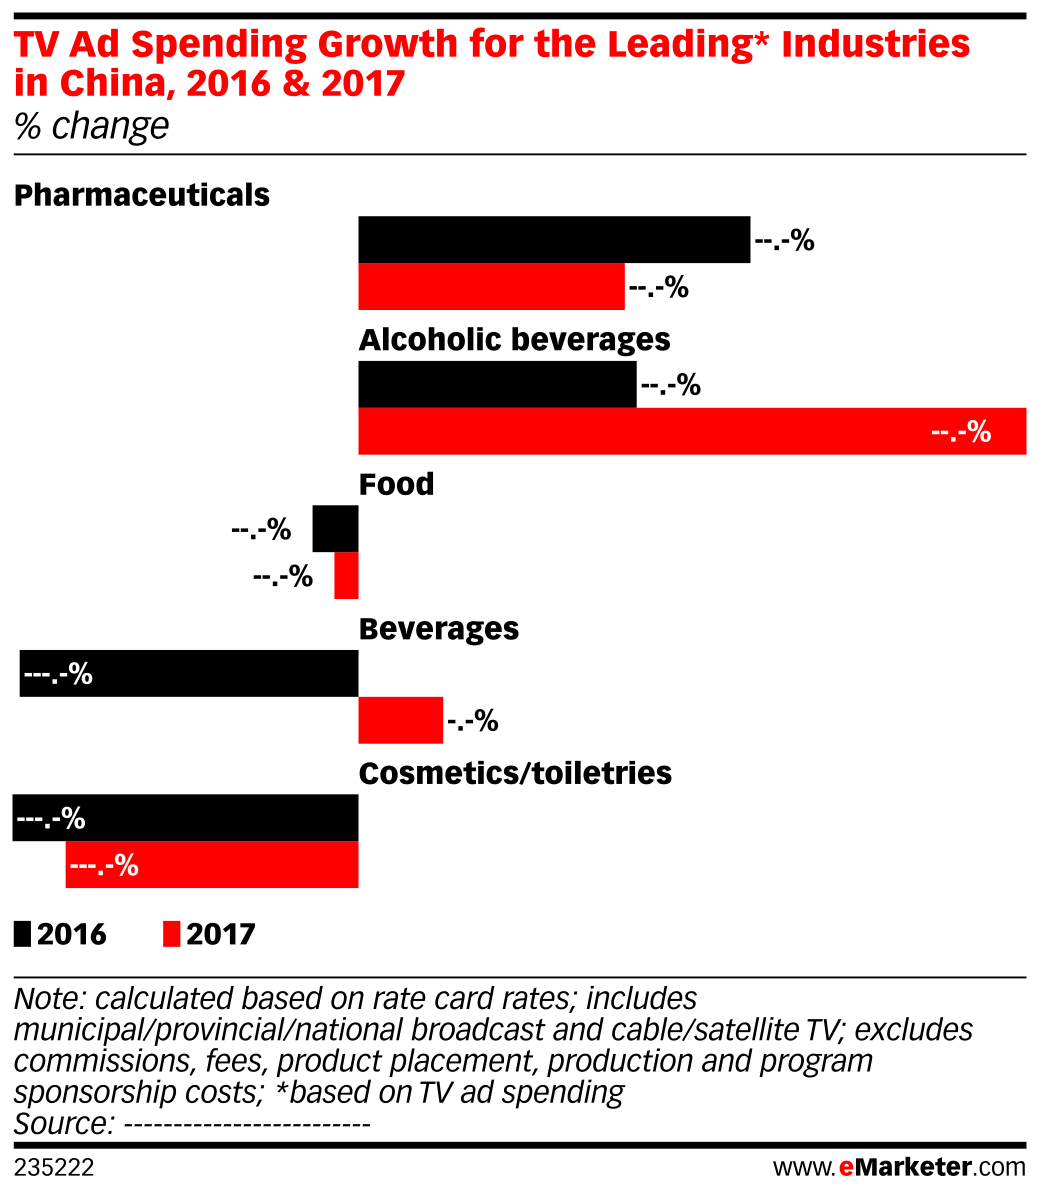 TV Ad Spending Growth for the Leading* Industries in China, 2016 & 2017 (% change)